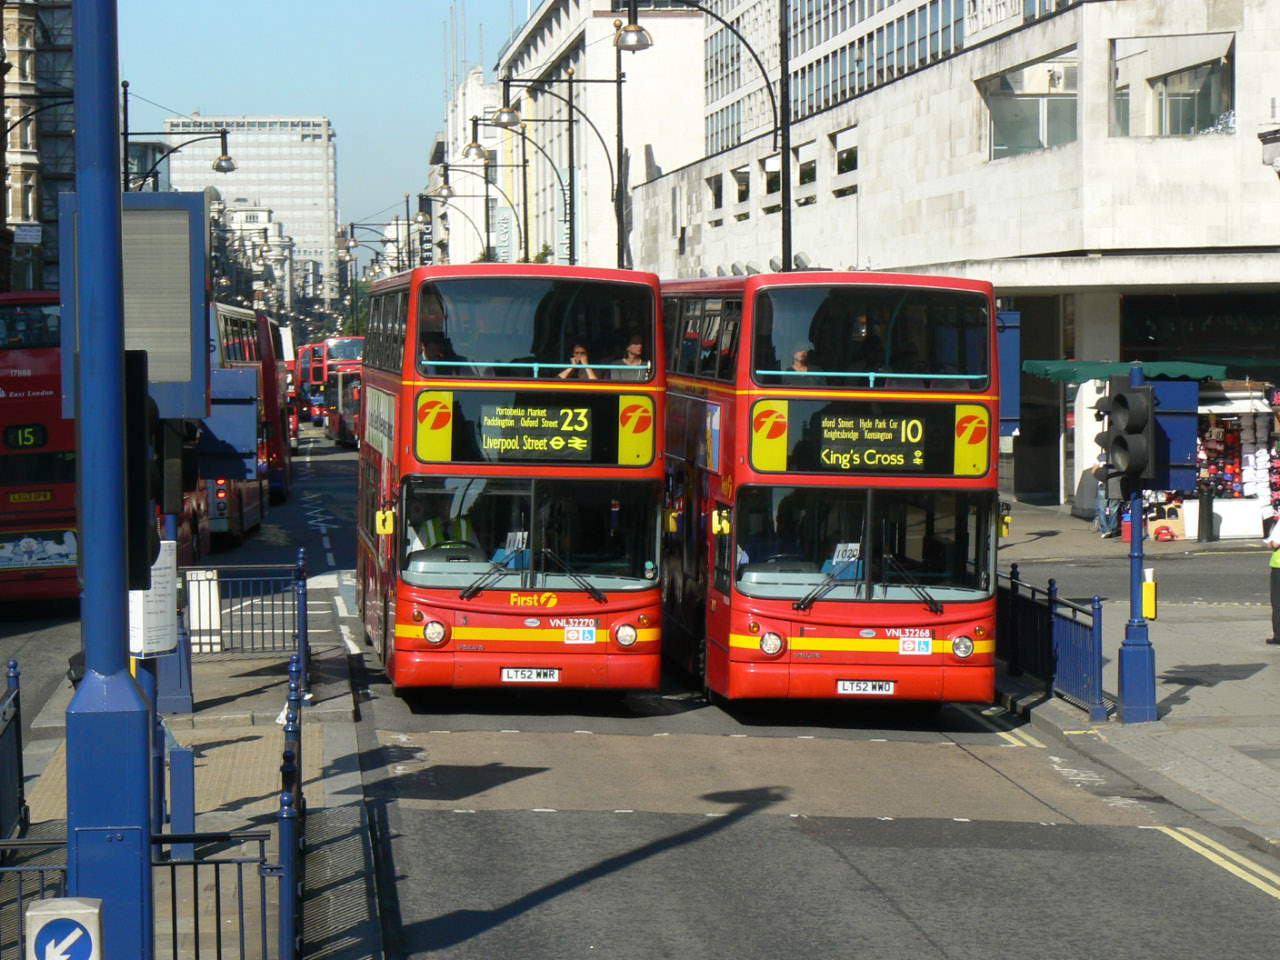 File London Bus Routes 23 And 10 Jpg Wikimedia Commons